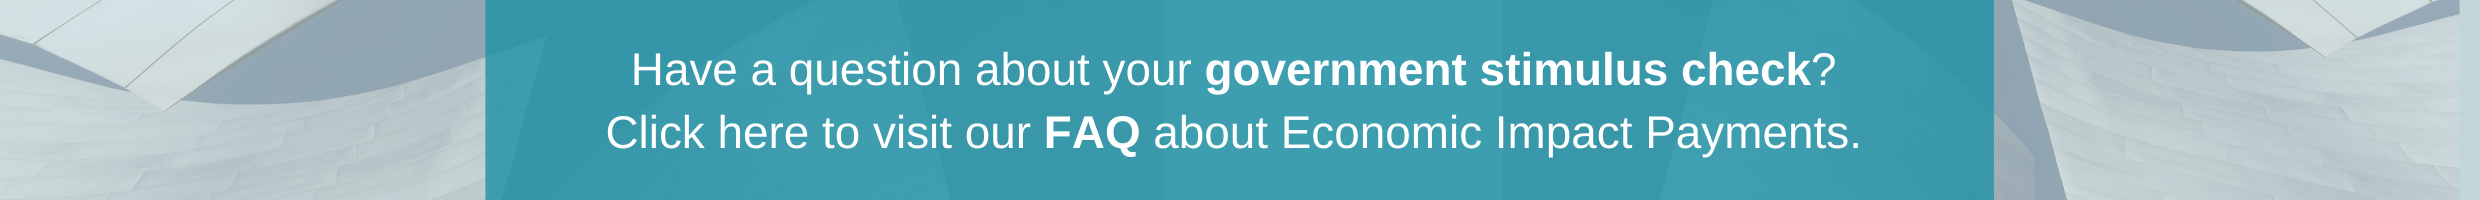 have a question about your government stimulus check? Click here to visit our FAQ about Economic Impact Payments.